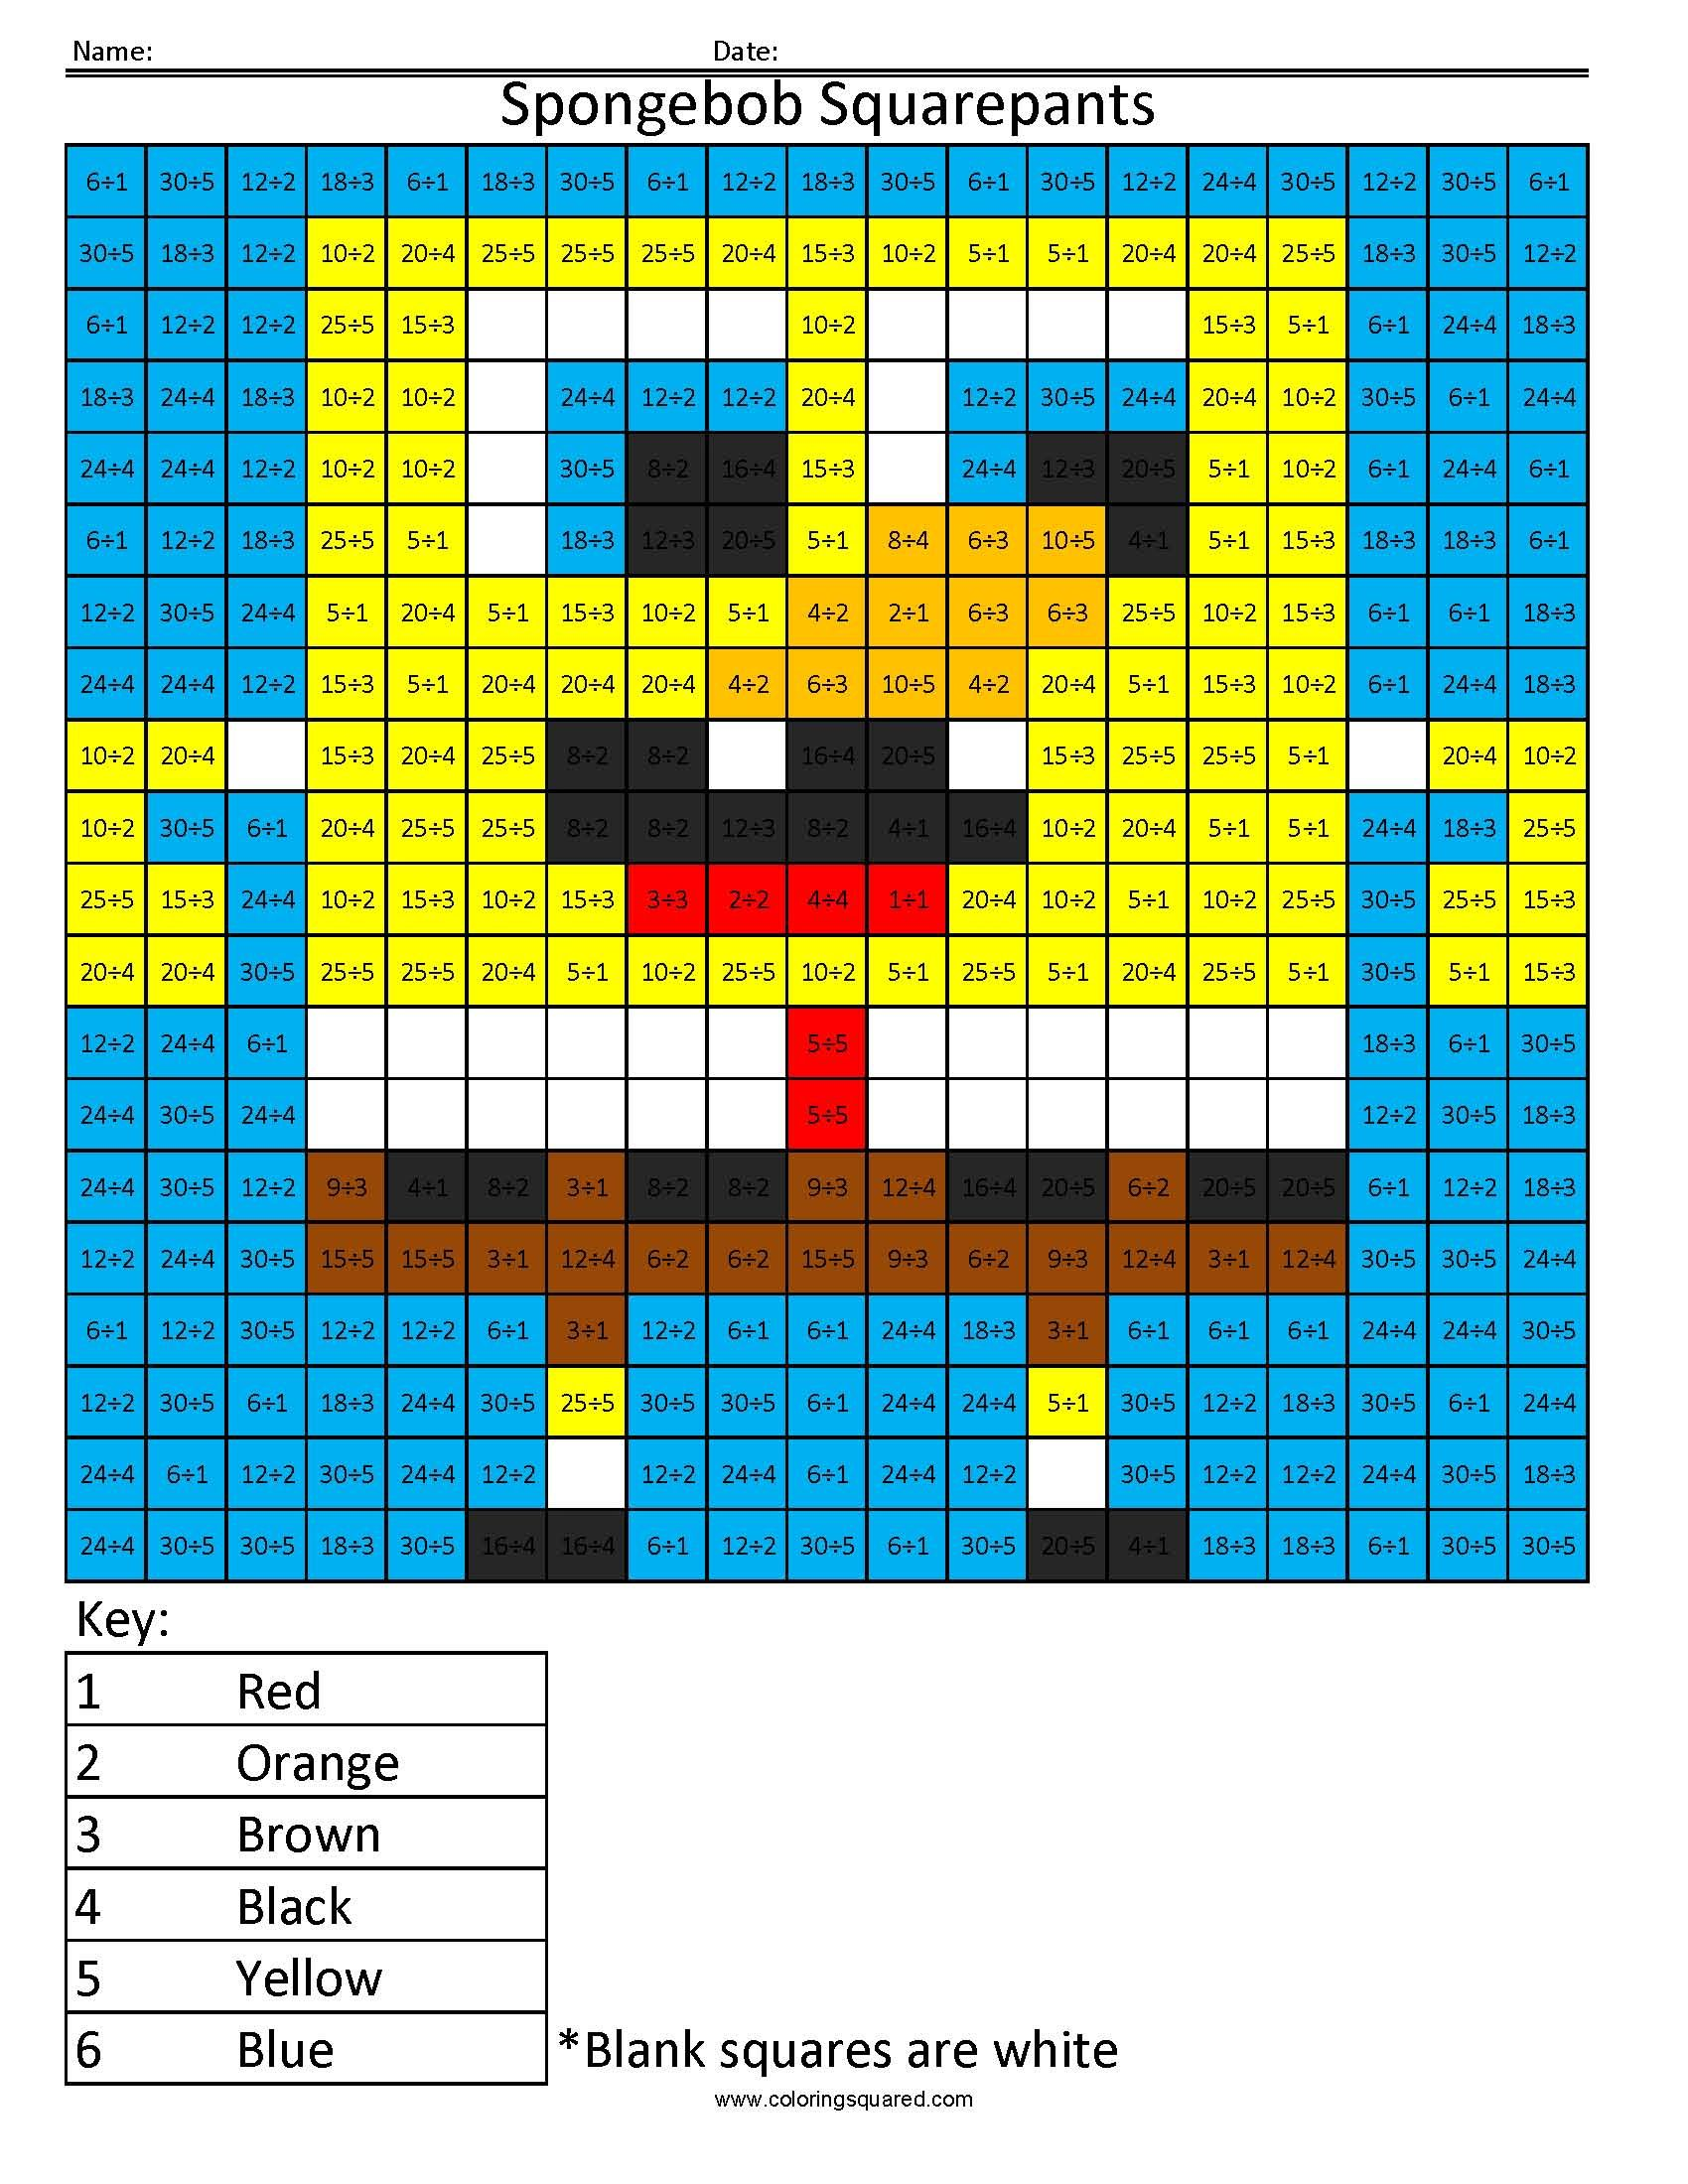 Printable coloring pages with math problems - Who Lives In A Pineapple Under The Sea Spongebob Squarepants Division Coloring Www Math Songsprintable Coloring Sheetscolor